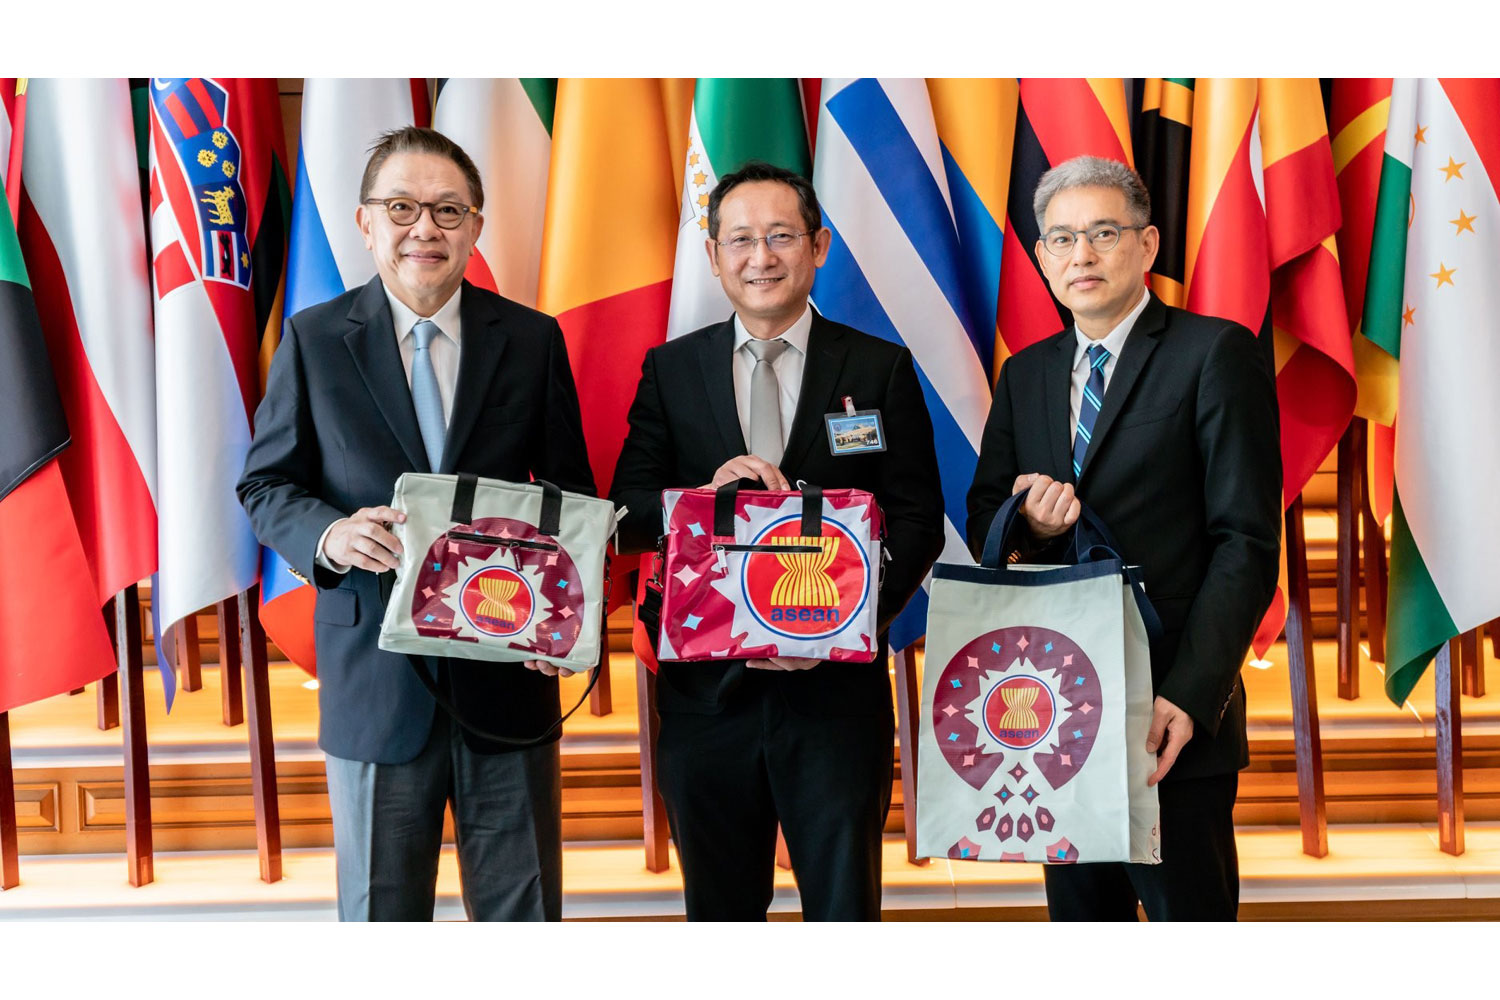 Caption: Mr. Visit Malaisirirat, CEO of Magnolia Quality Development Corporation Limited (MQDC) (center) presented upcycled bags to Mr. Tharit Charoongwat (left), Former Ambassador and Head of ASEAN Summit Operation 2019 in the Ministry of Foreign Affairs, and Mr. Jittapat Thongprasert (right), Ambassador Attached to the Ministry Office of the Permanent Secretary at the Ministry of Foreign Affairs. The bags will be presented to the heads of each national delegation at the ASEAN Summit and their partners.